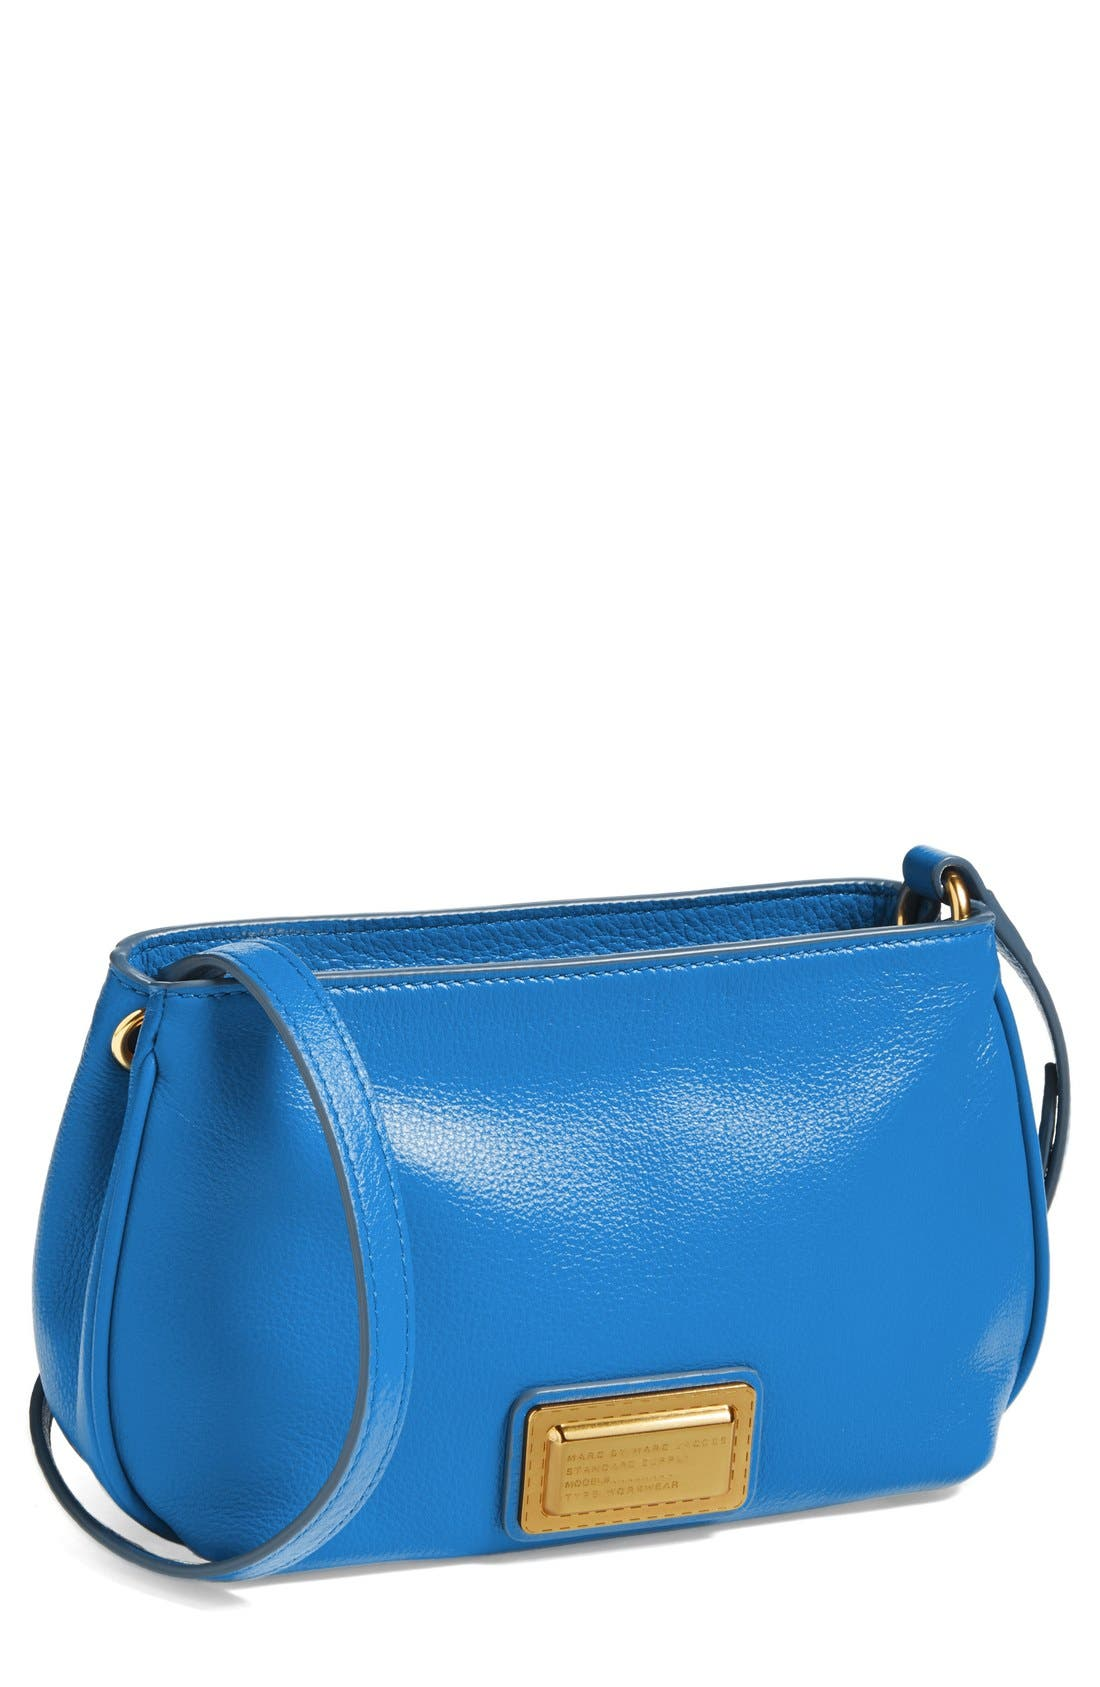 Main Image - MARC BY MARC JACOBS 'Percy' Crossbody Bag